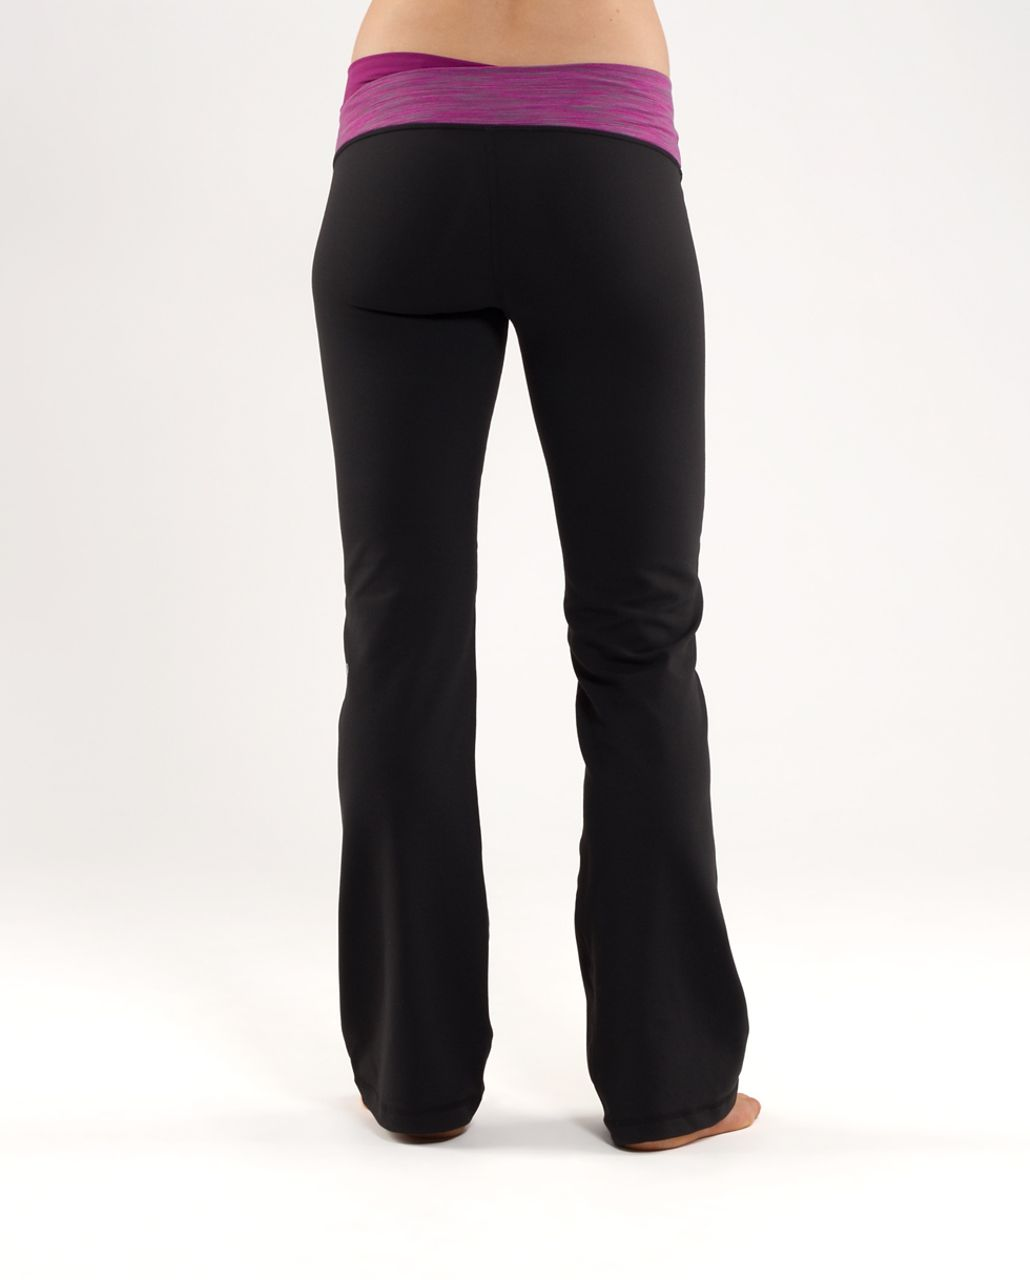 Lululemon Astro Pant (Regular) - Black /  Magnum Space Dye /  Dew Berry Space Dye